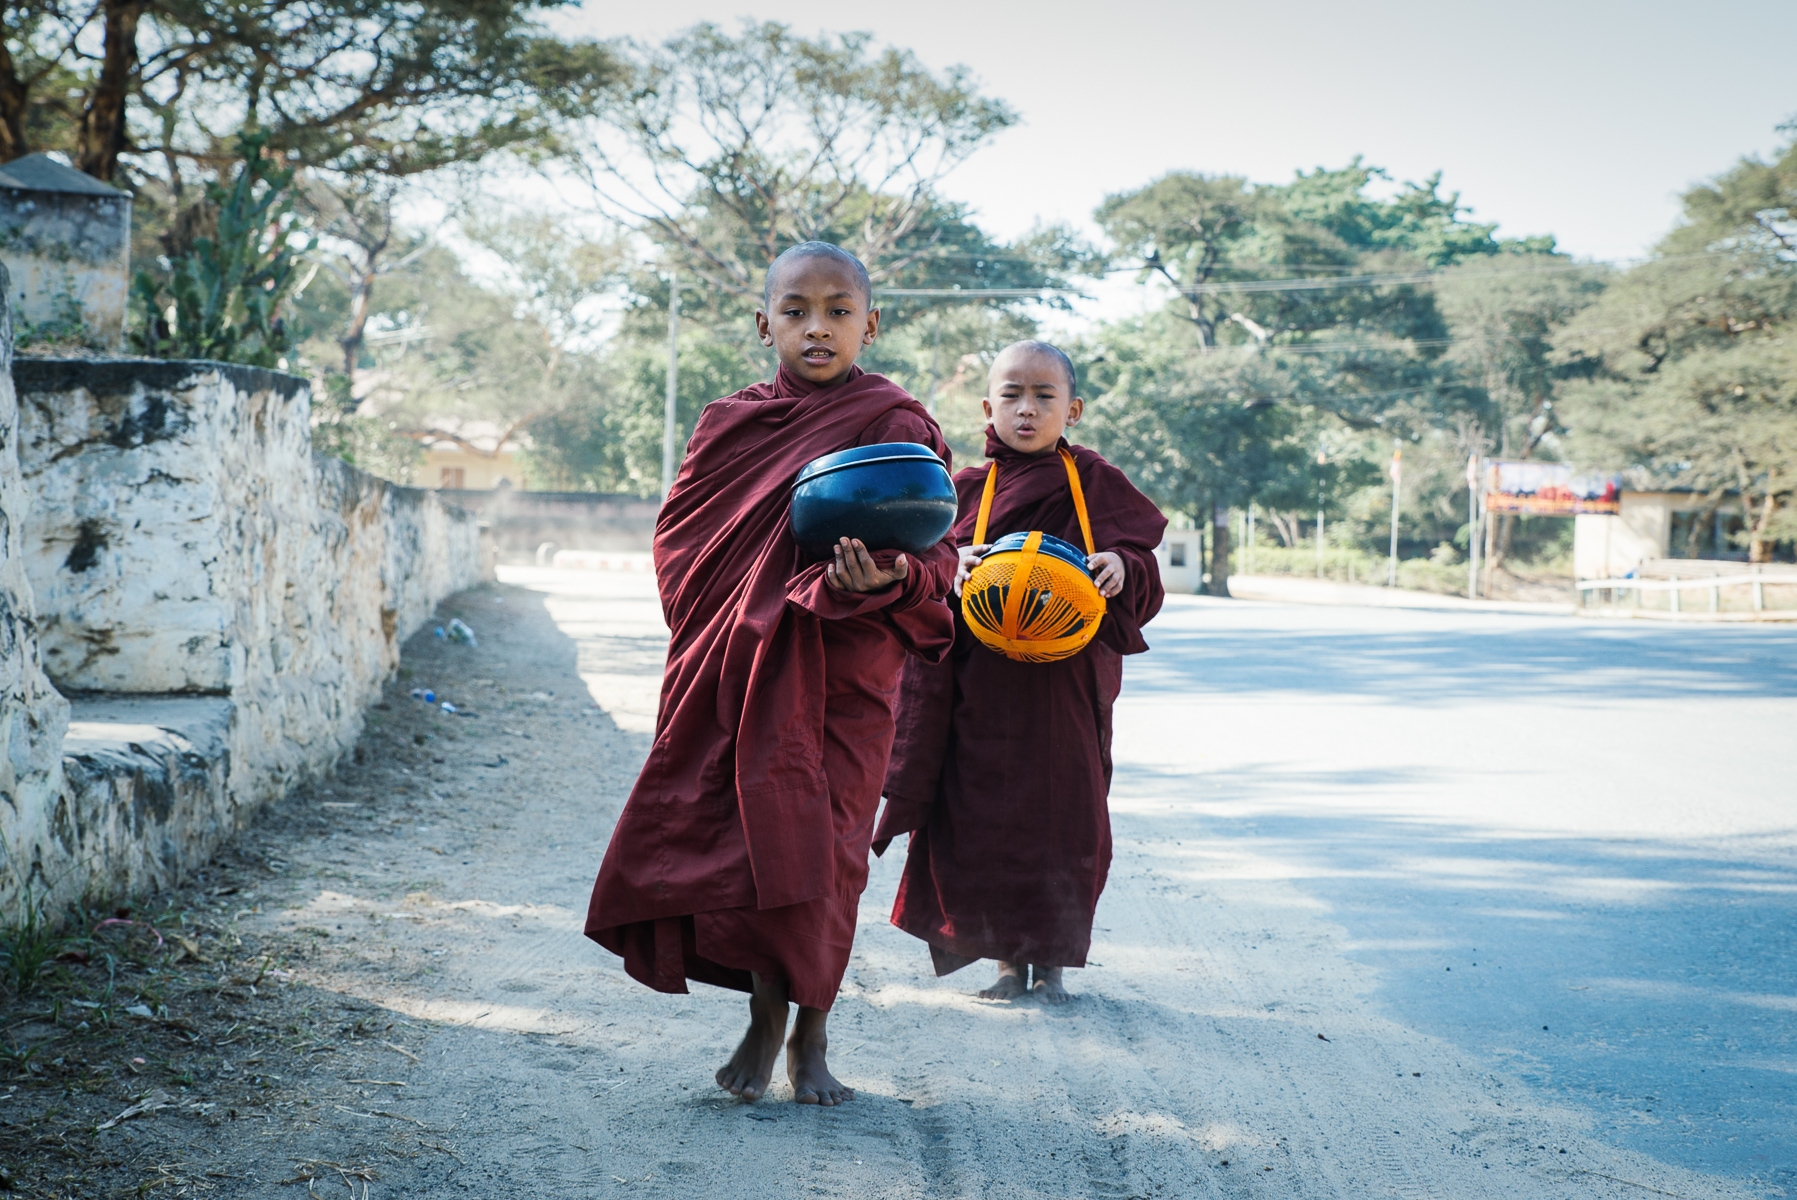 Monk in Myanmar